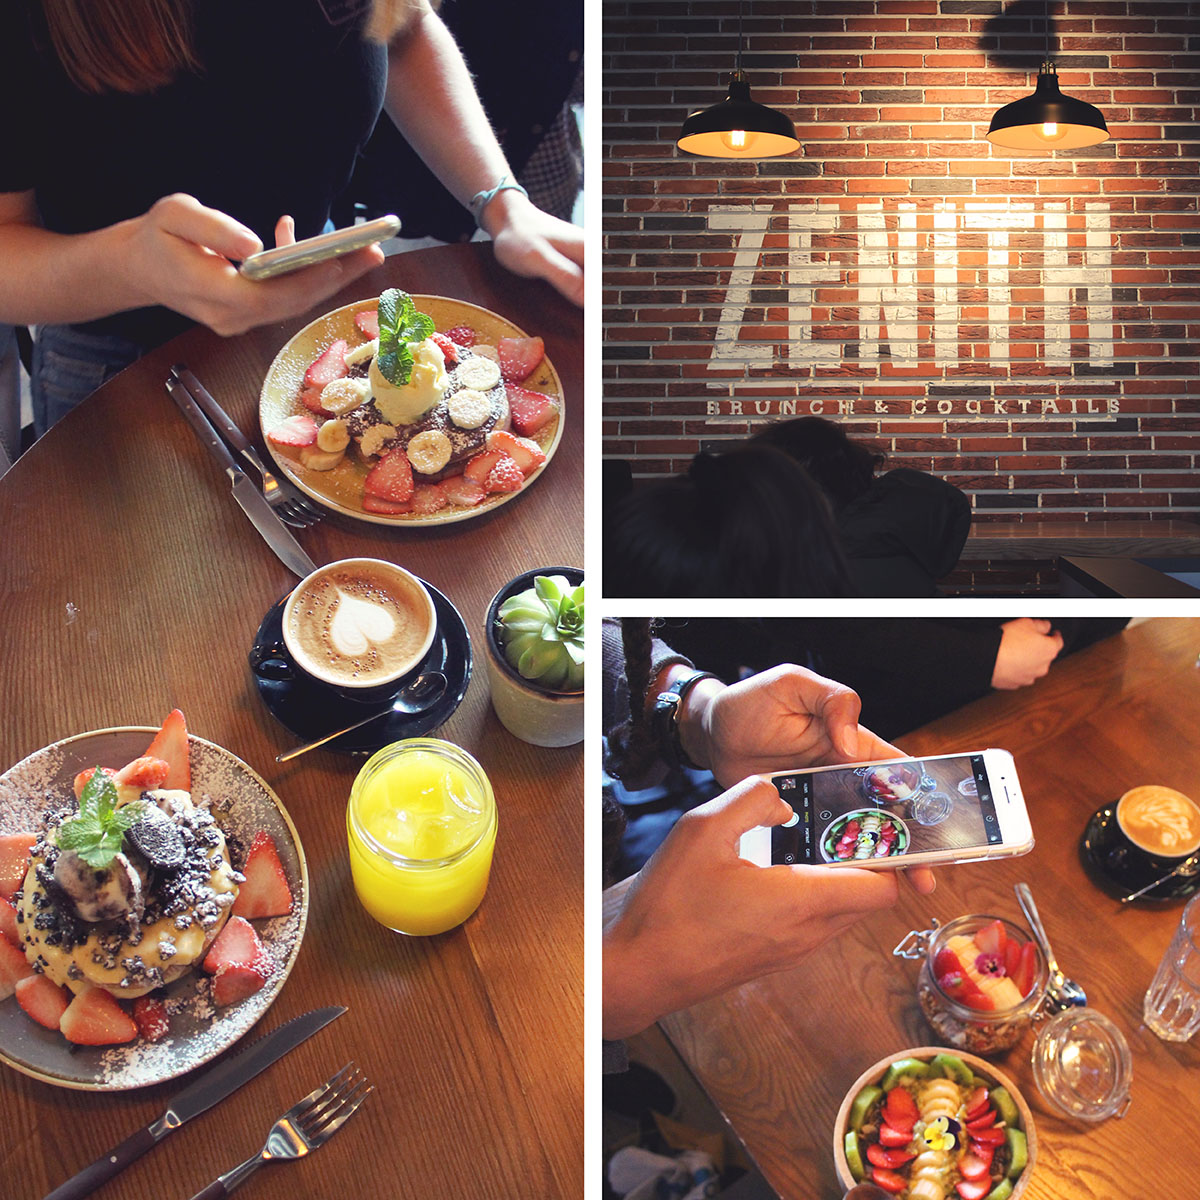 Zenith Brunchs & Cocktail Bar brunch Porto citytrip